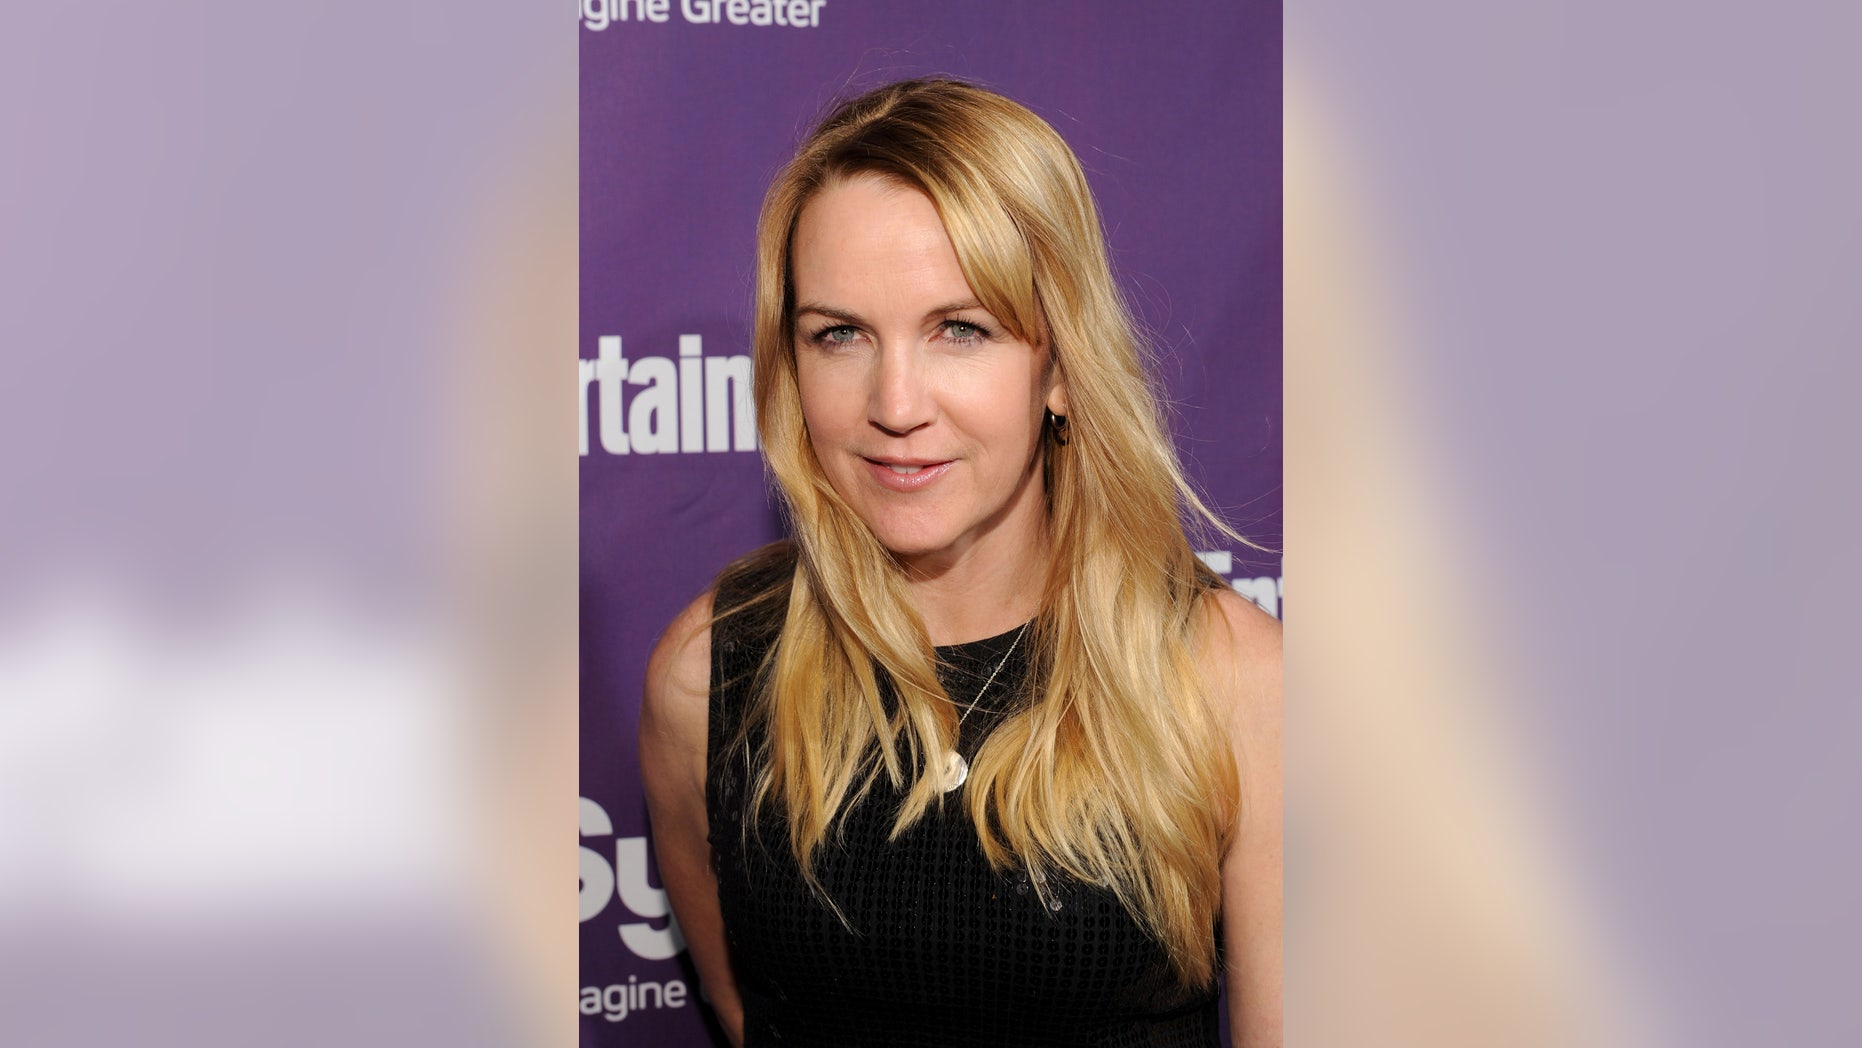 Xena Warrior Princess Sidekick Renee Oconnor Talks Starring In A